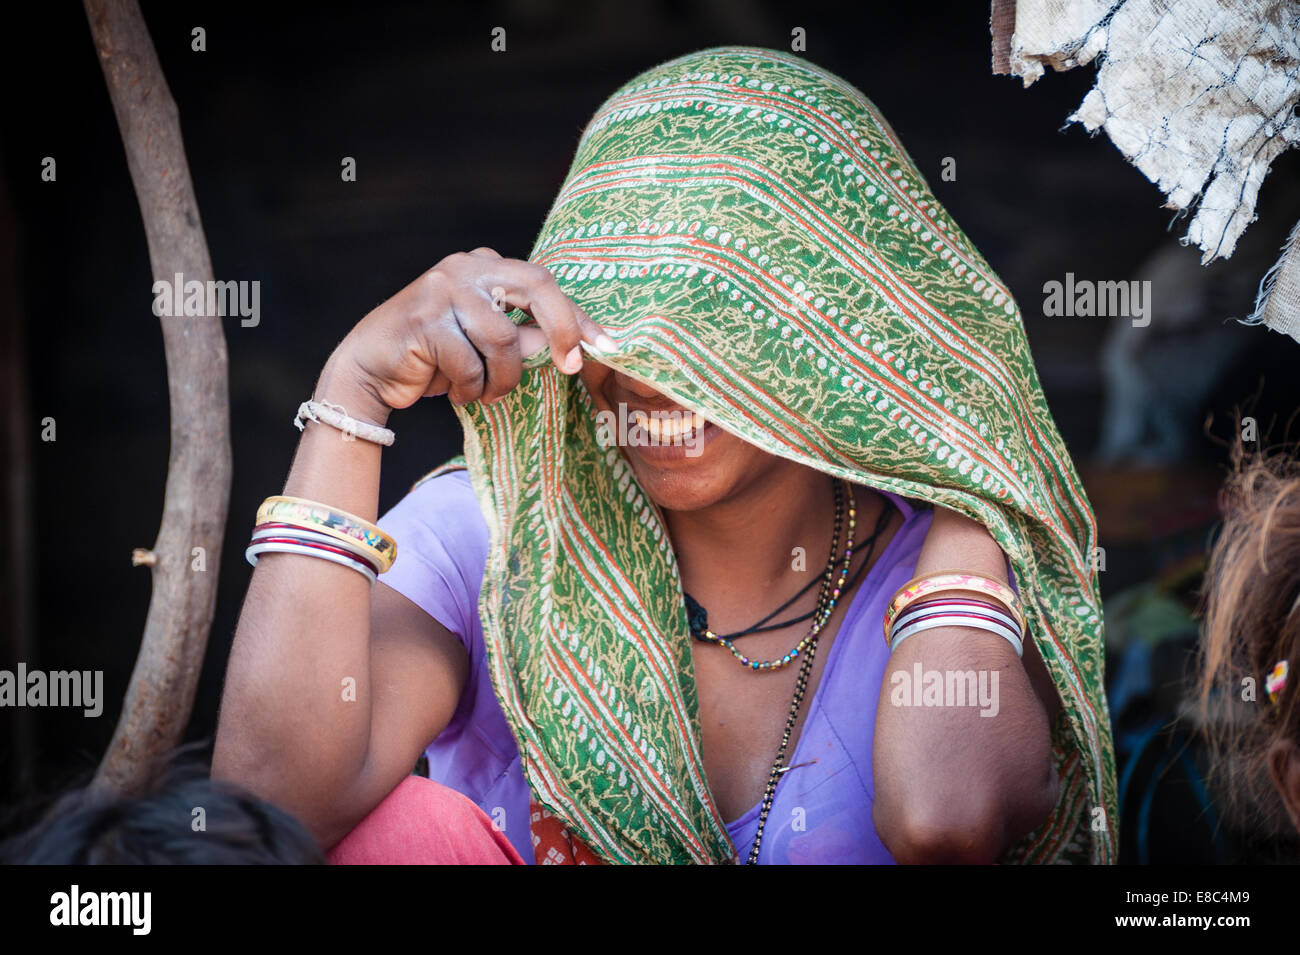 A shy Indian woman is smiling under sharee - Stock Image